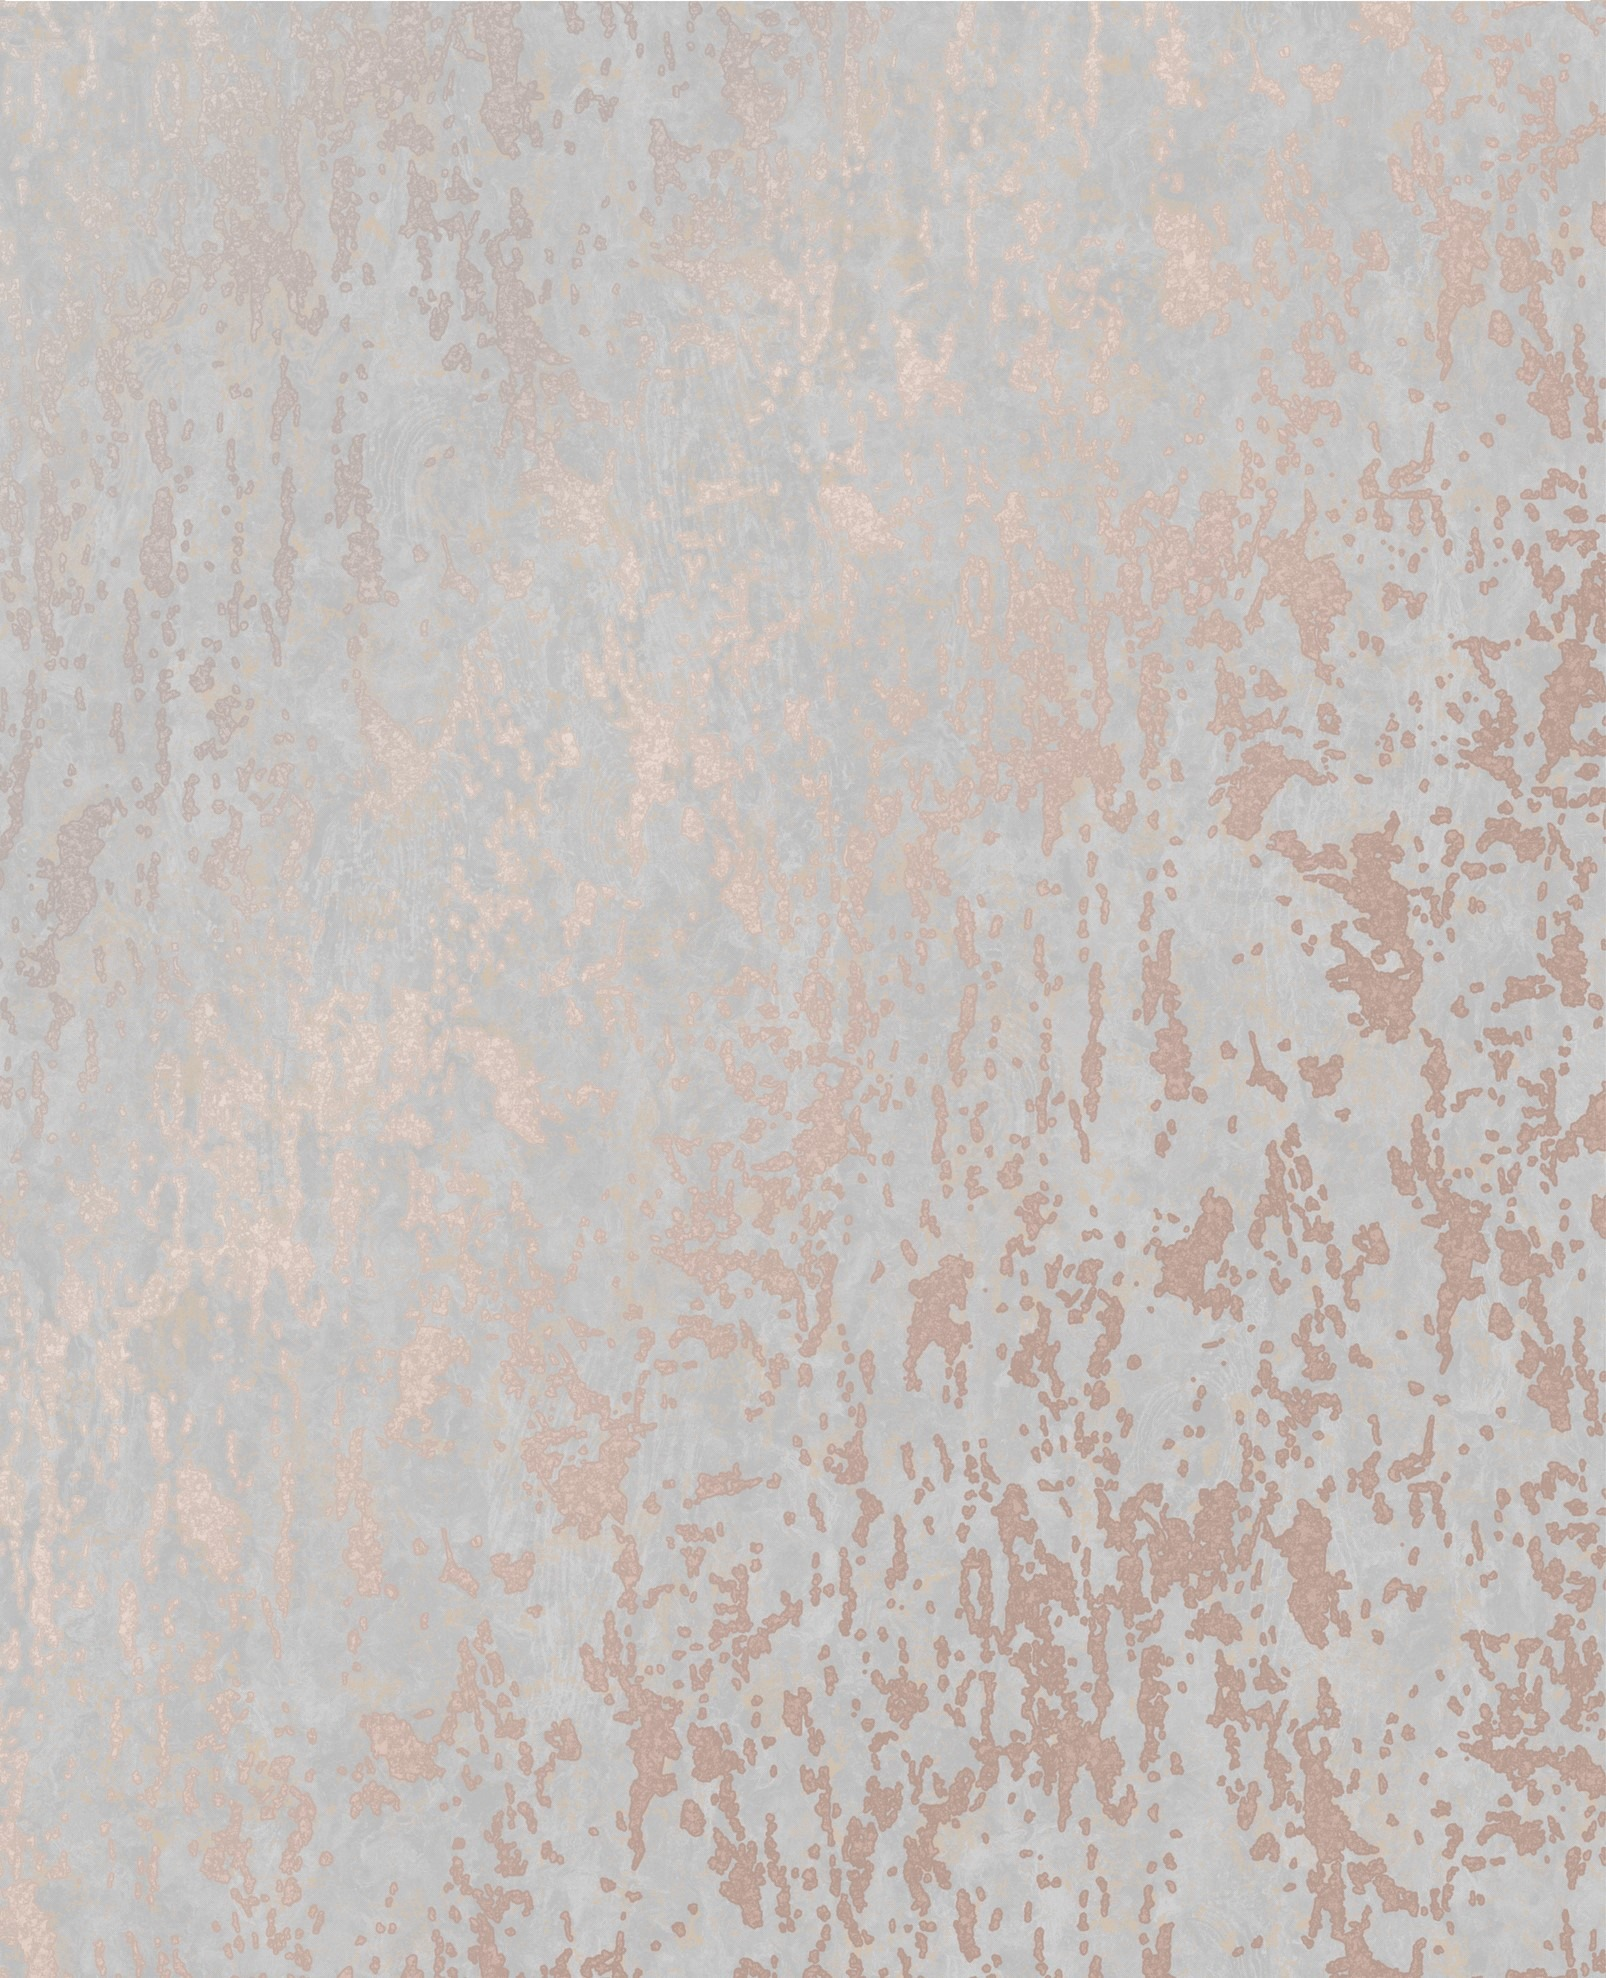 Rose Gold Distressed Industrial Texture Wallpaper